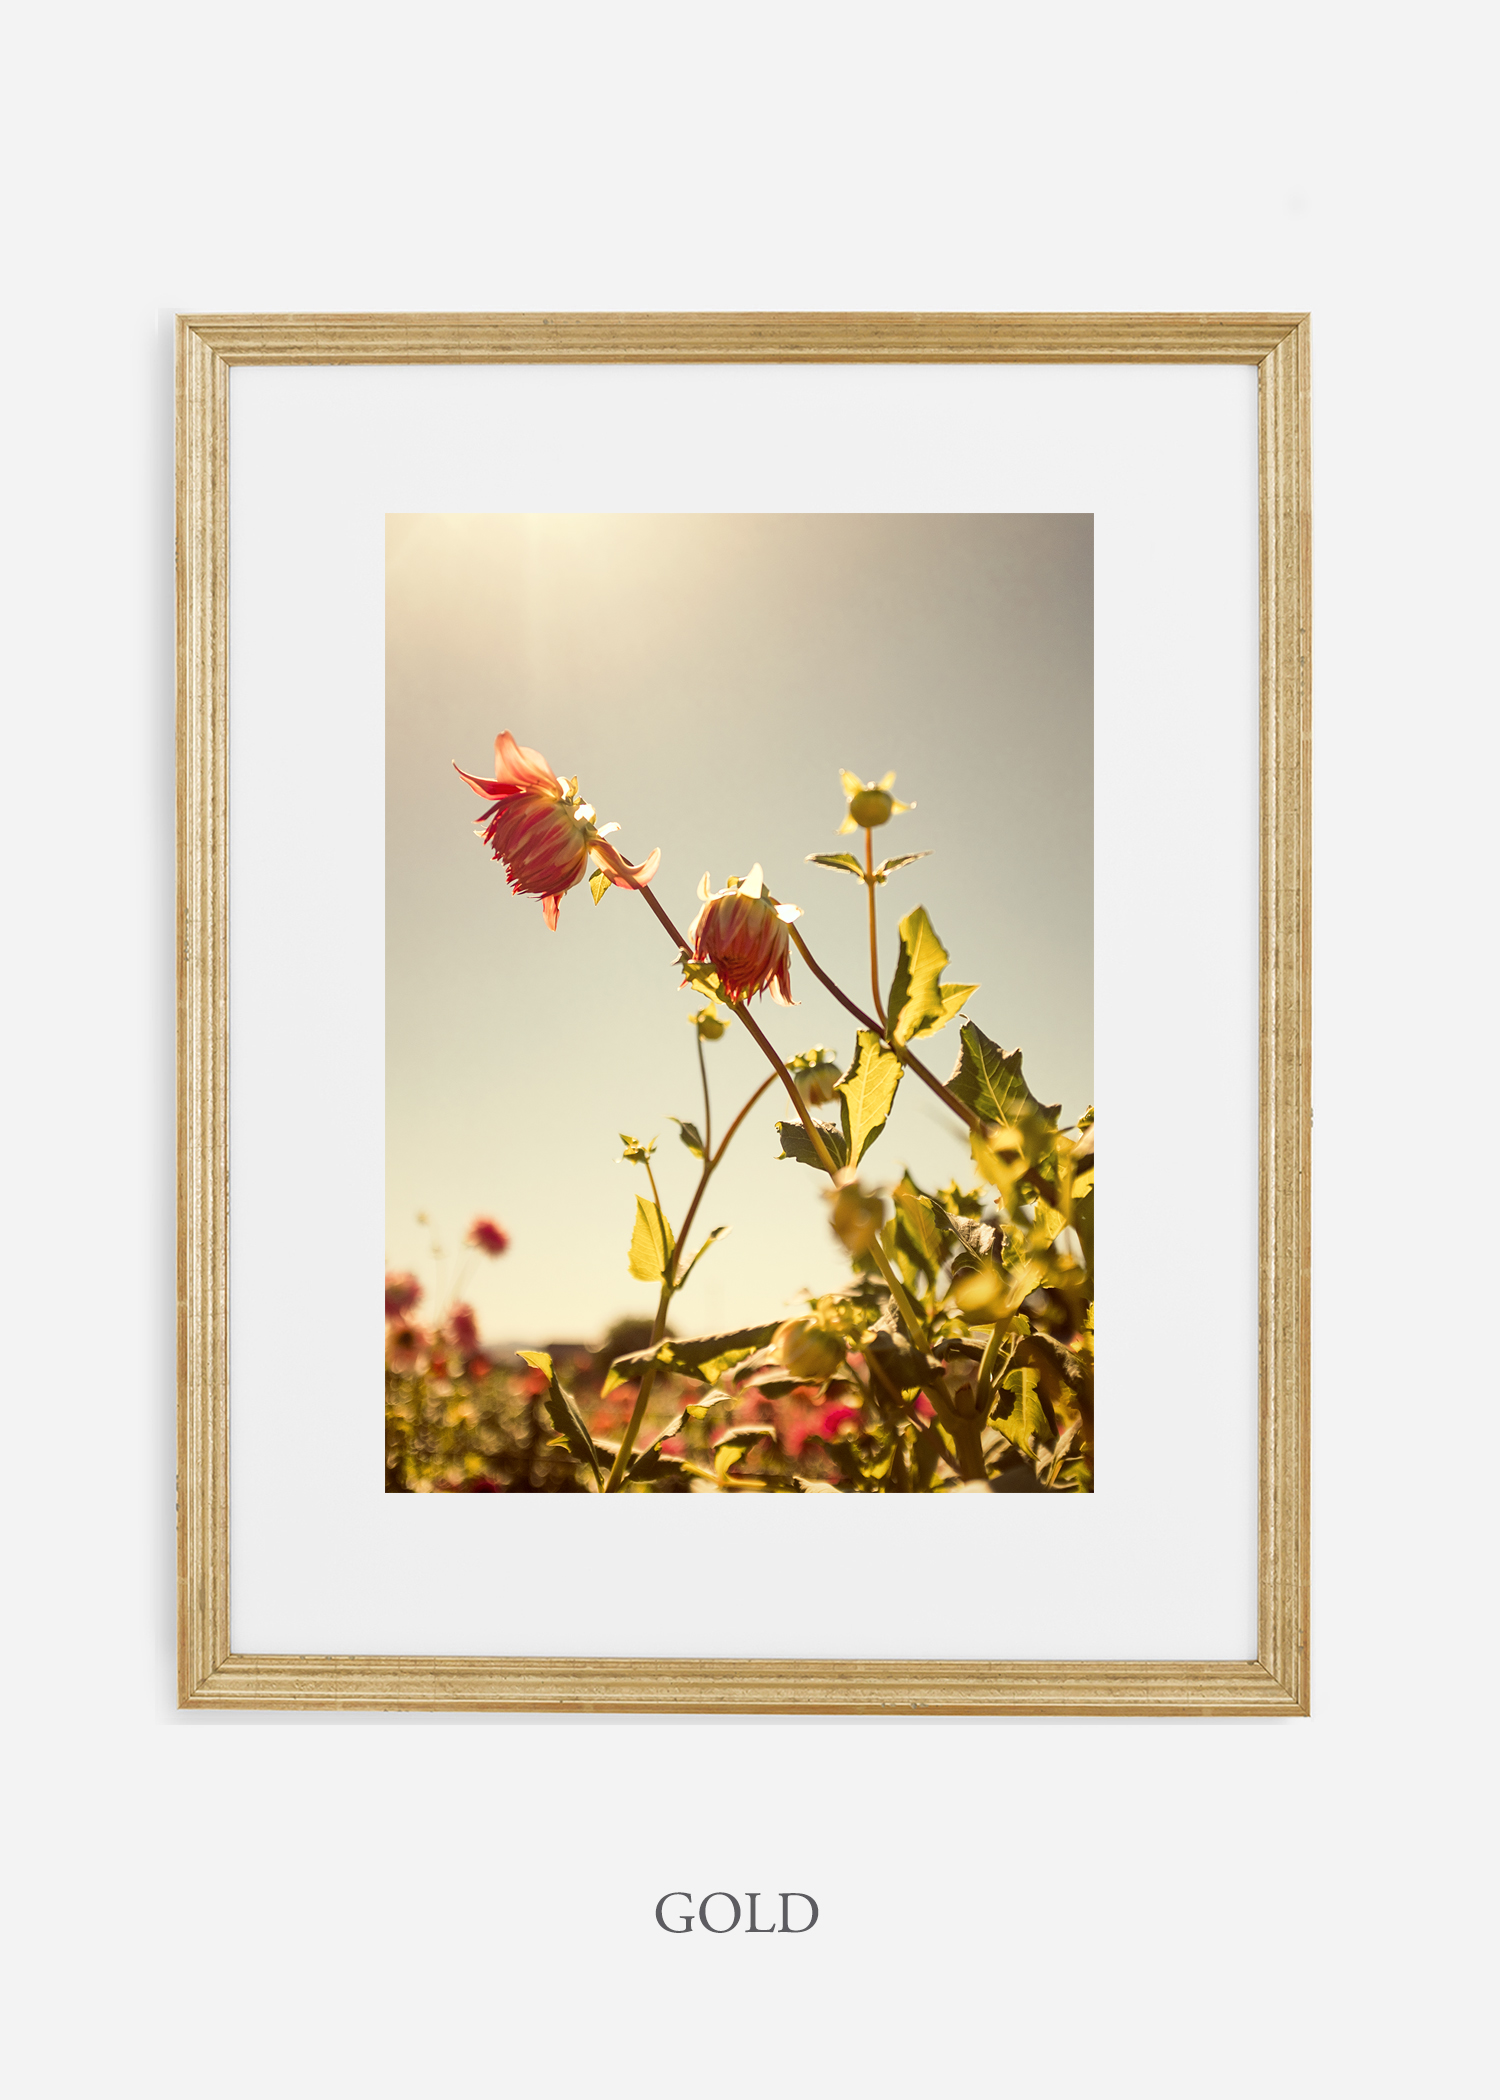 flora-no-10-gold-mat-custom-frame-dahlia-print-floral-print-floral-art-wilder-california-botanical-prints-home-decor-design-prints-print-shop.jpg